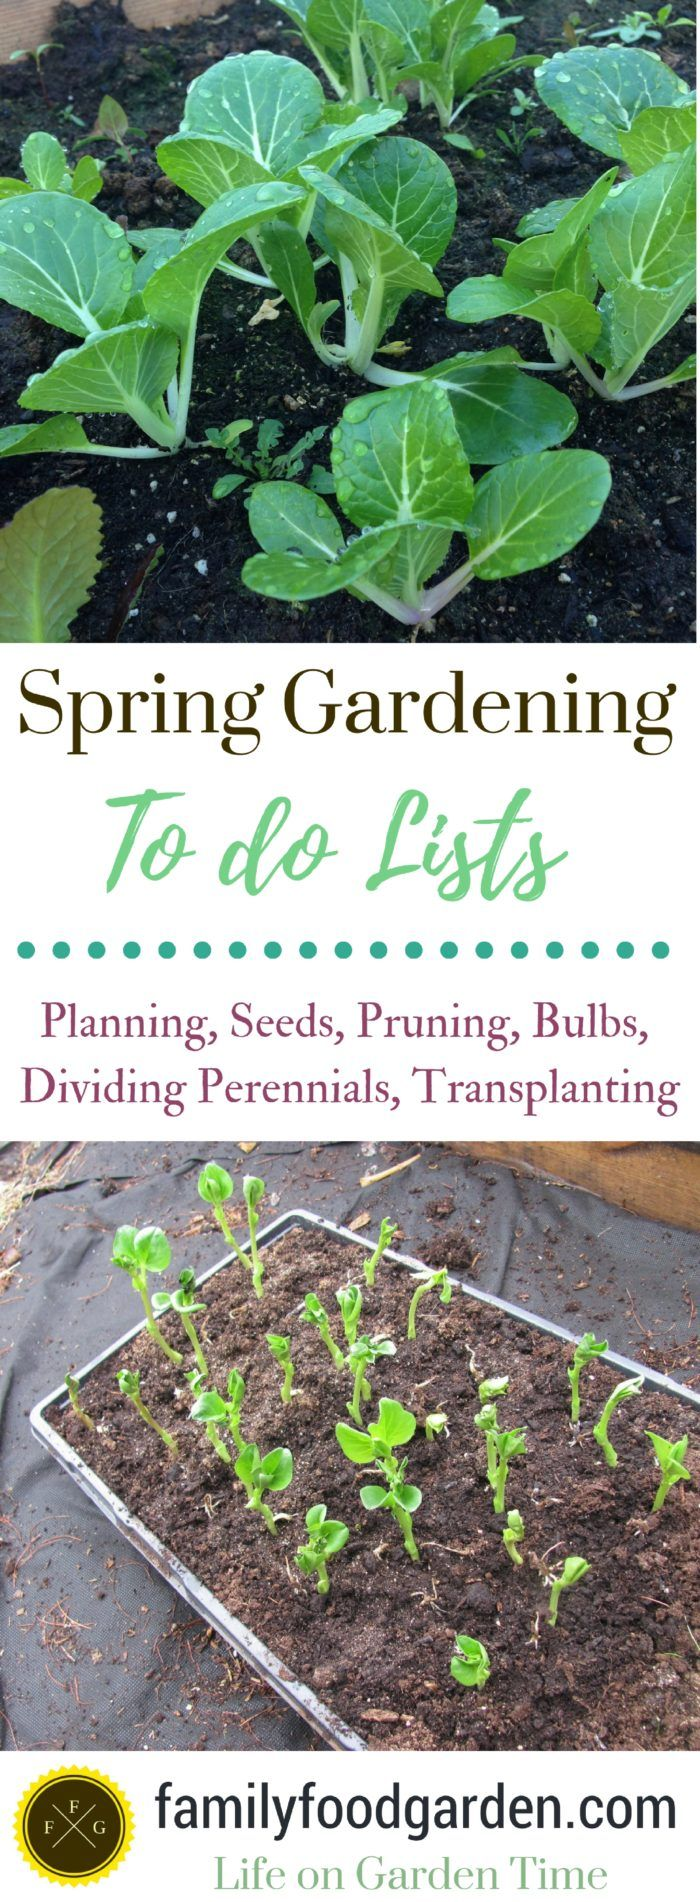 Spring gardening to do lists